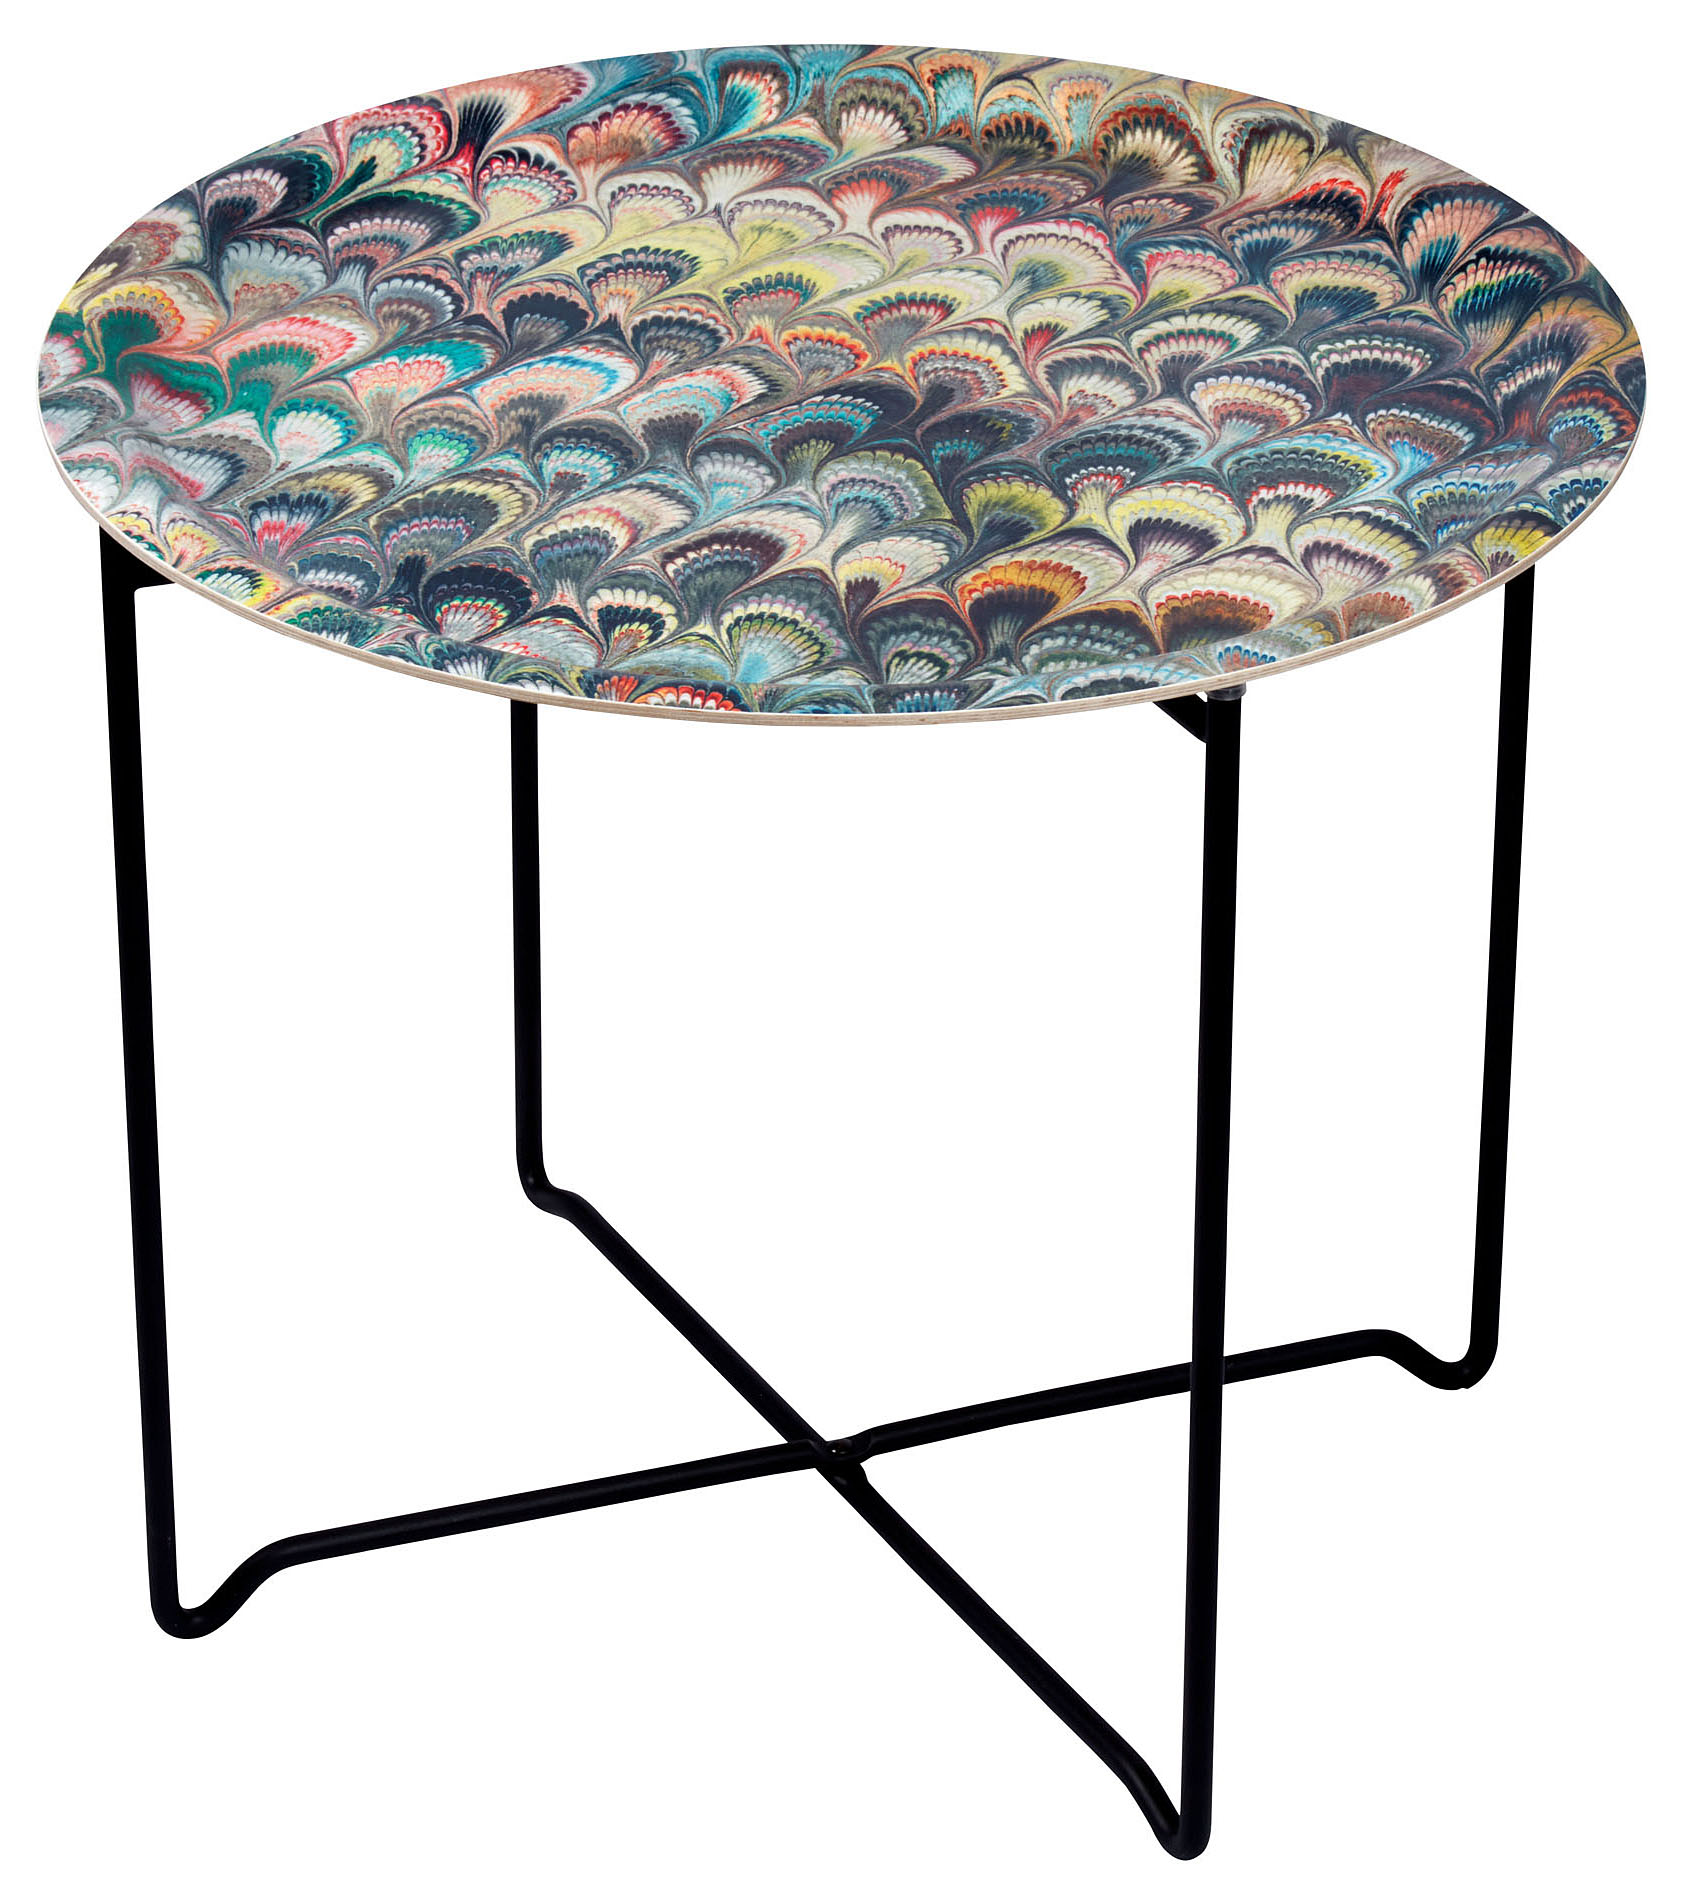 Marbleized Tray and black Metal Tray Stand